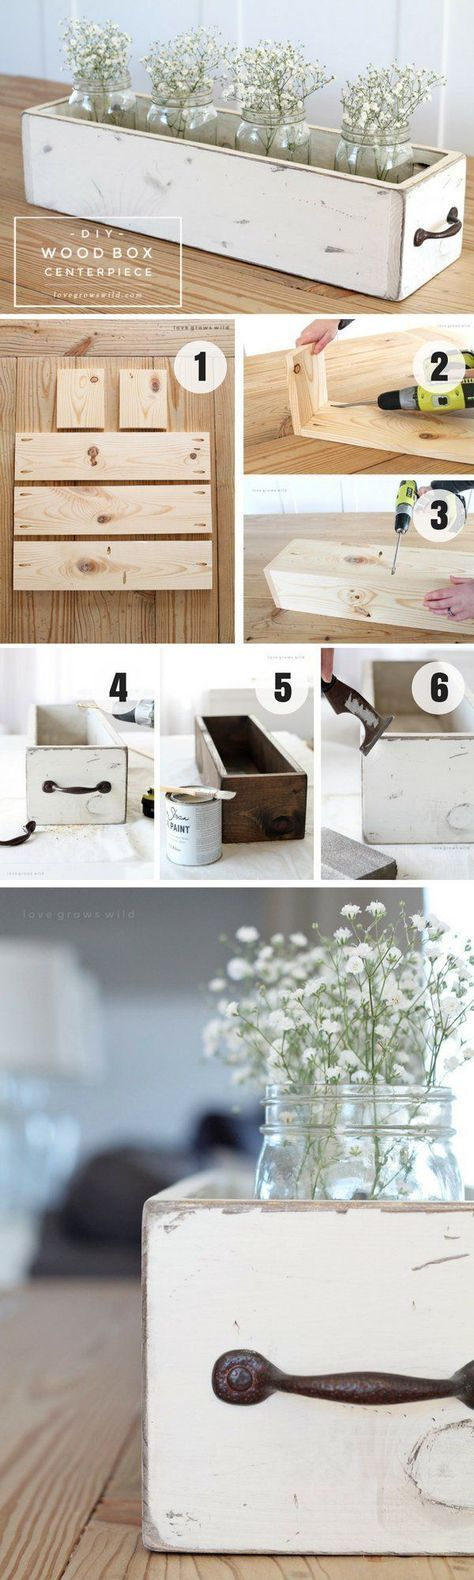 Check out how to build an easy diy wood box centerpiece check out how to build an easy diy wood box centerpiece istandarddesign do it yourself home decor projects pinterest solutioingenieria Image collections